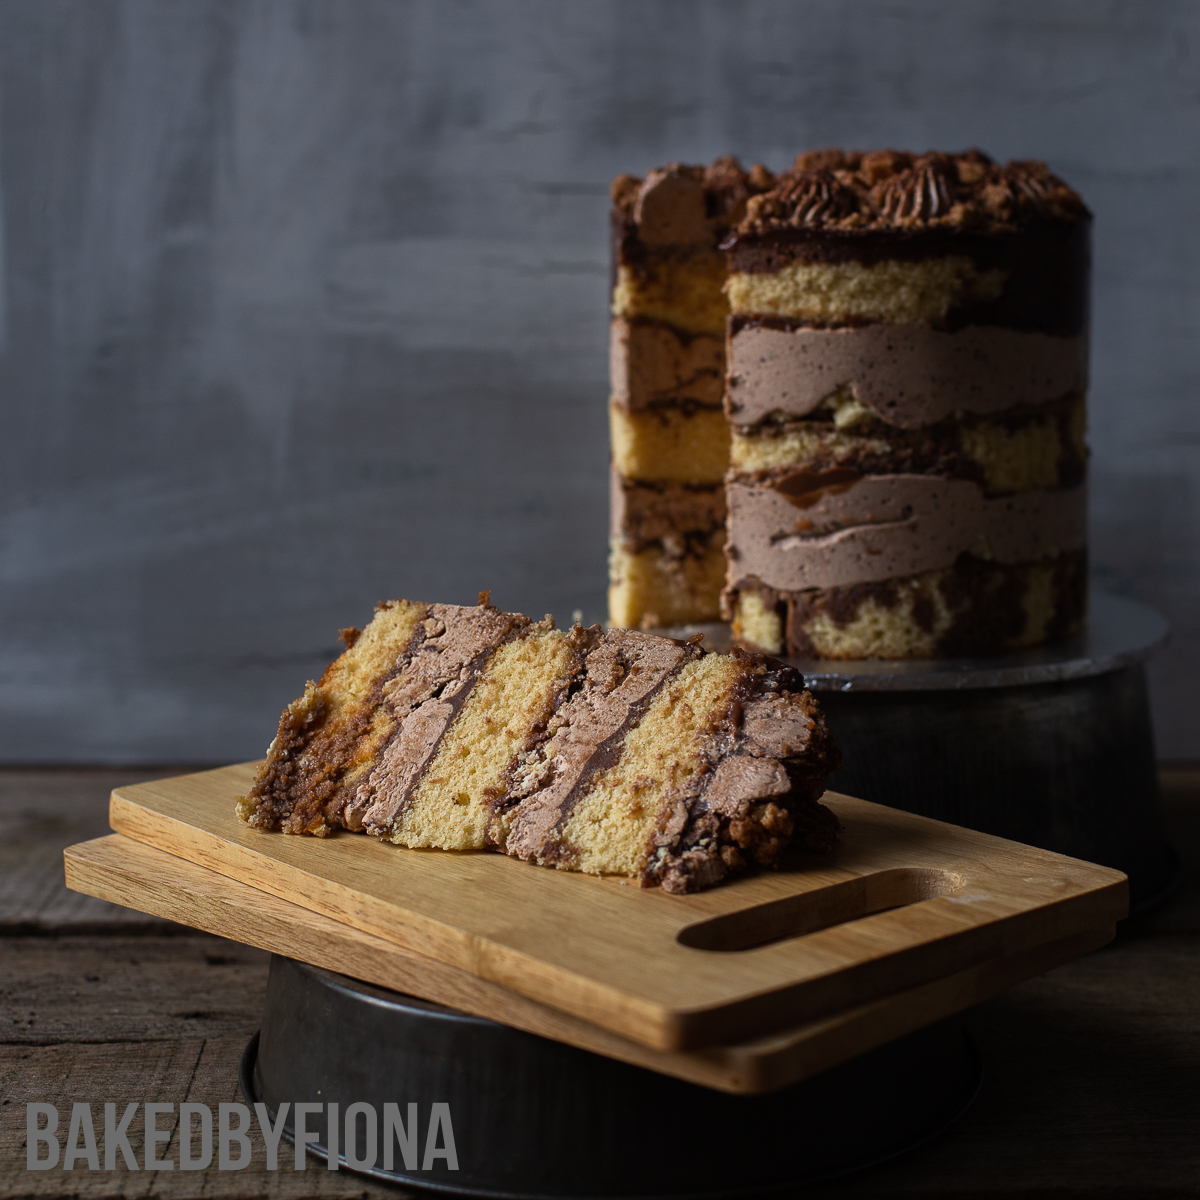 Sydney Cakes, Baked By Fiona Milo with Milk cake